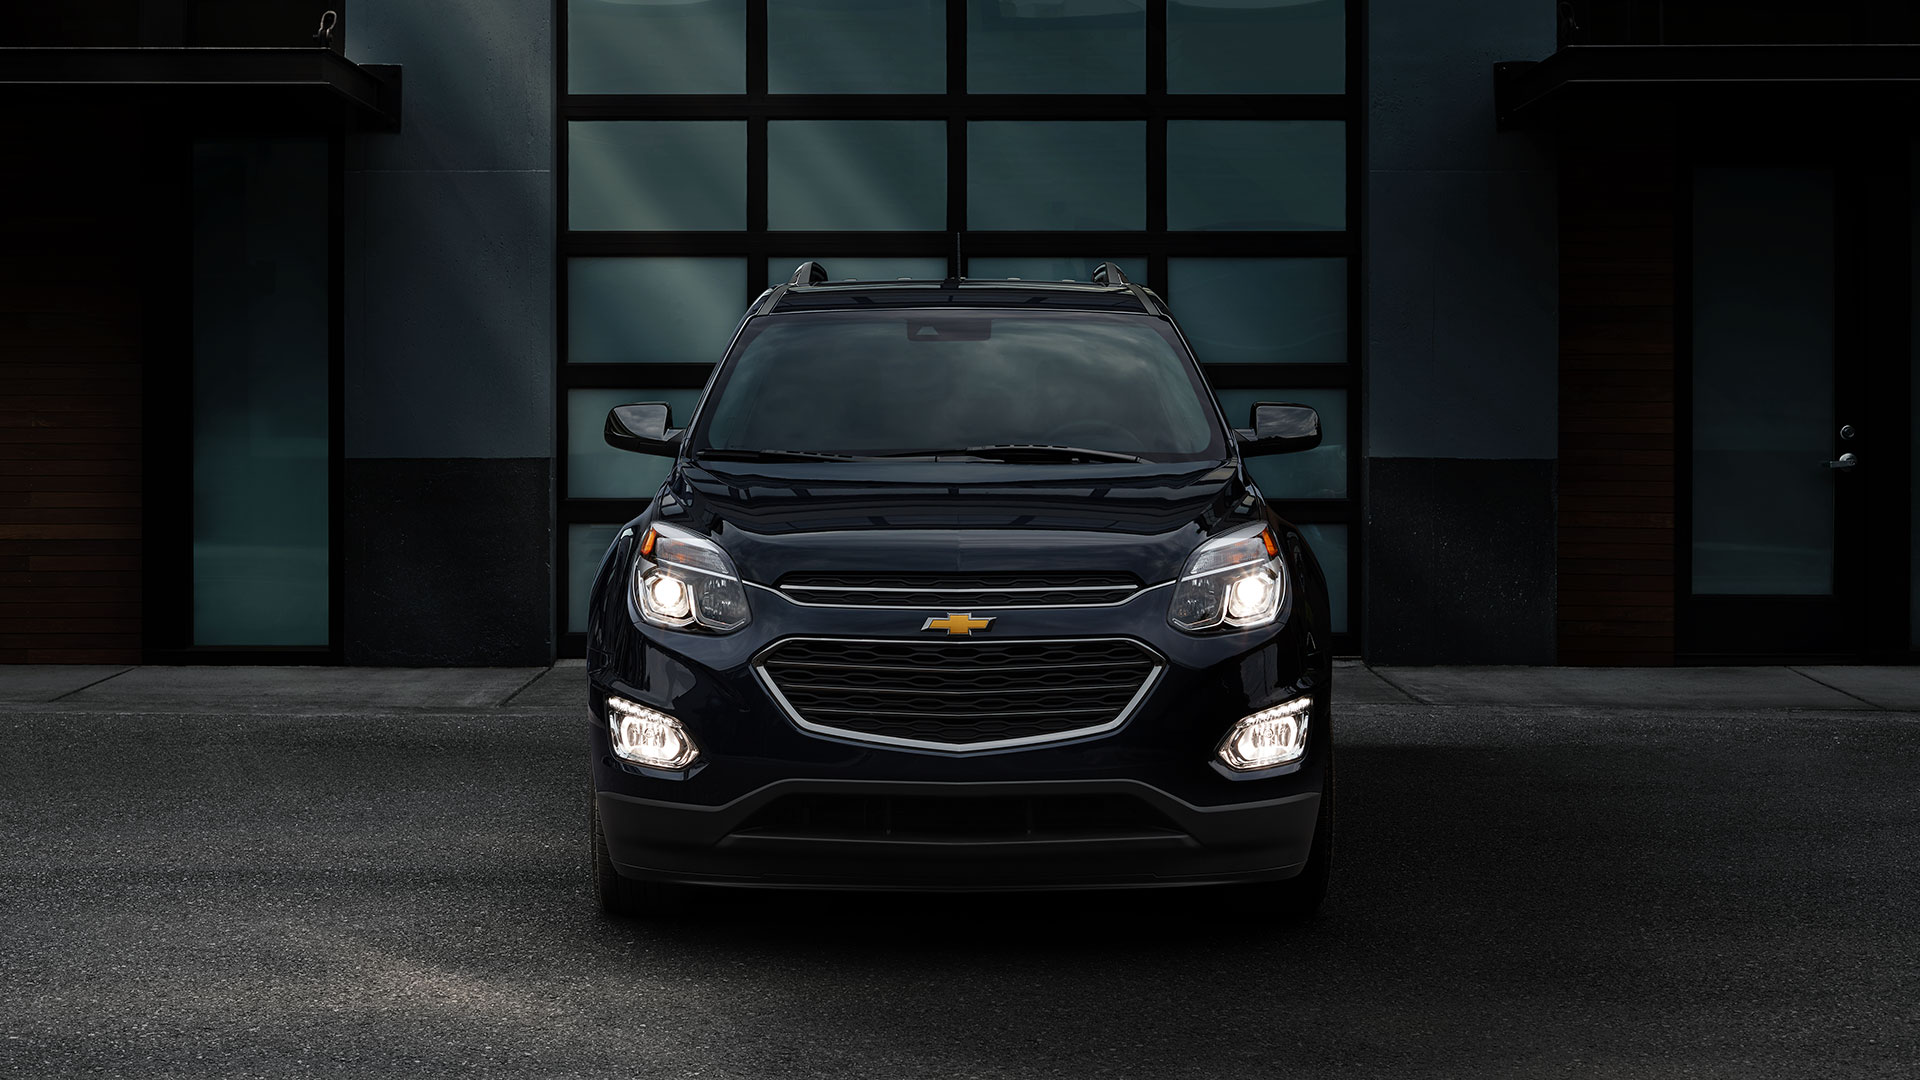 2017 Chevrolet Equinox for Sale near Fairfax, VA